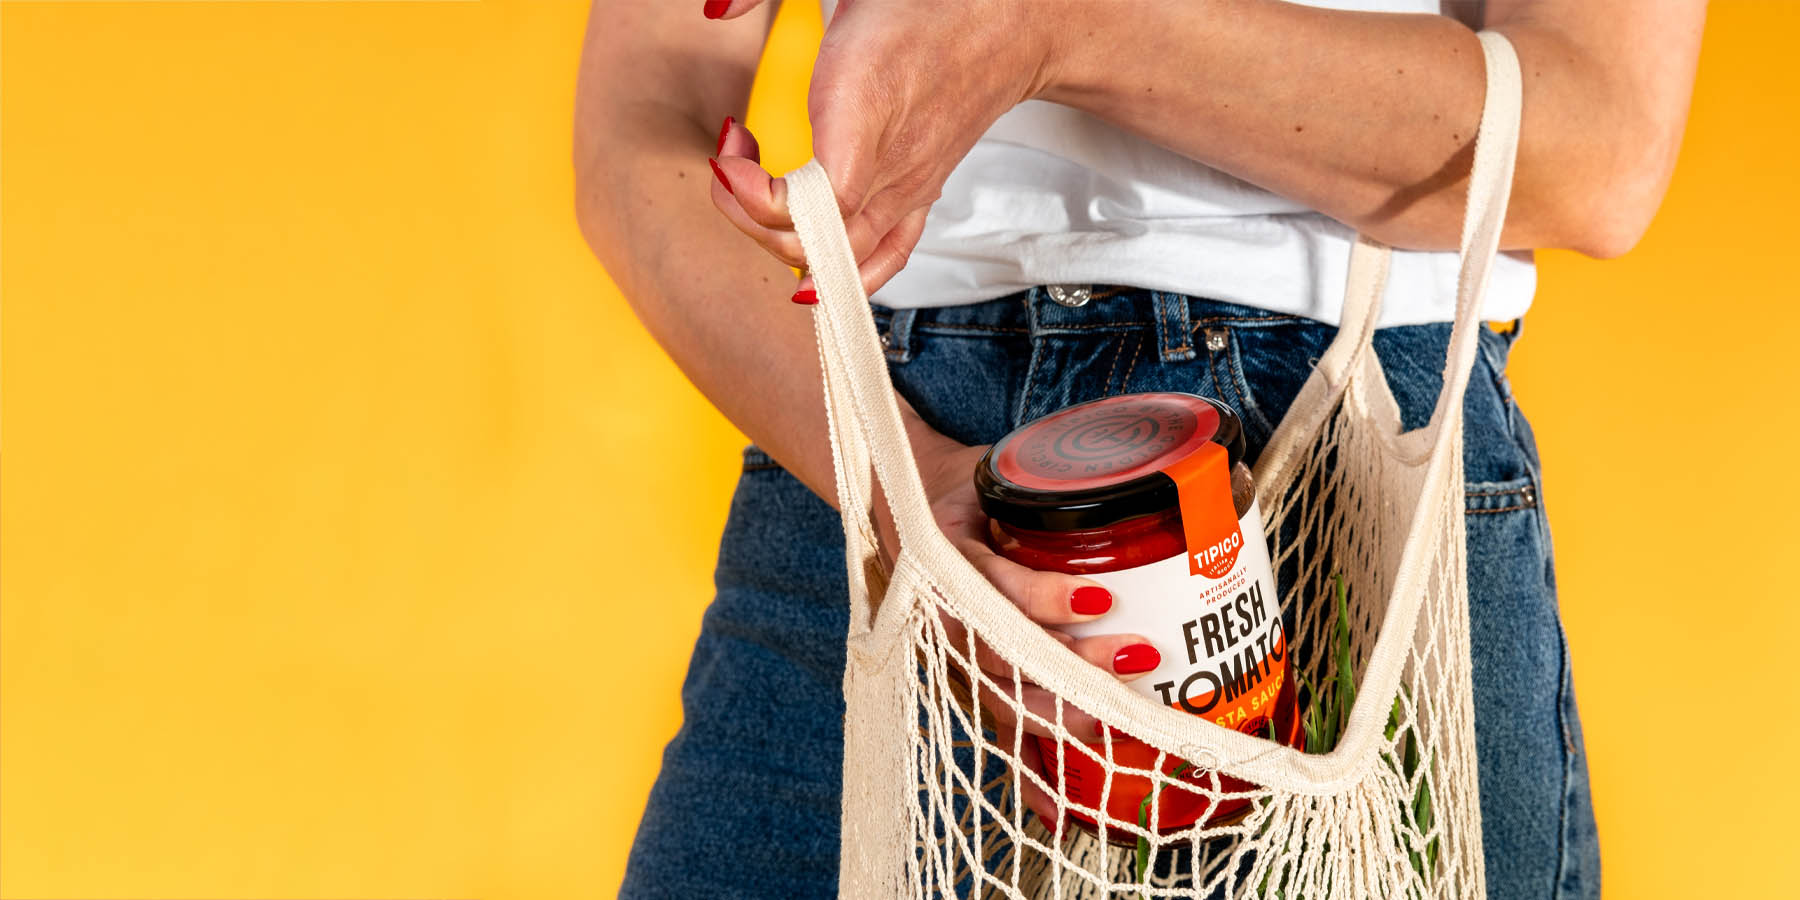 Woman holding shopping bag, taking out a jar of Tipico sauce